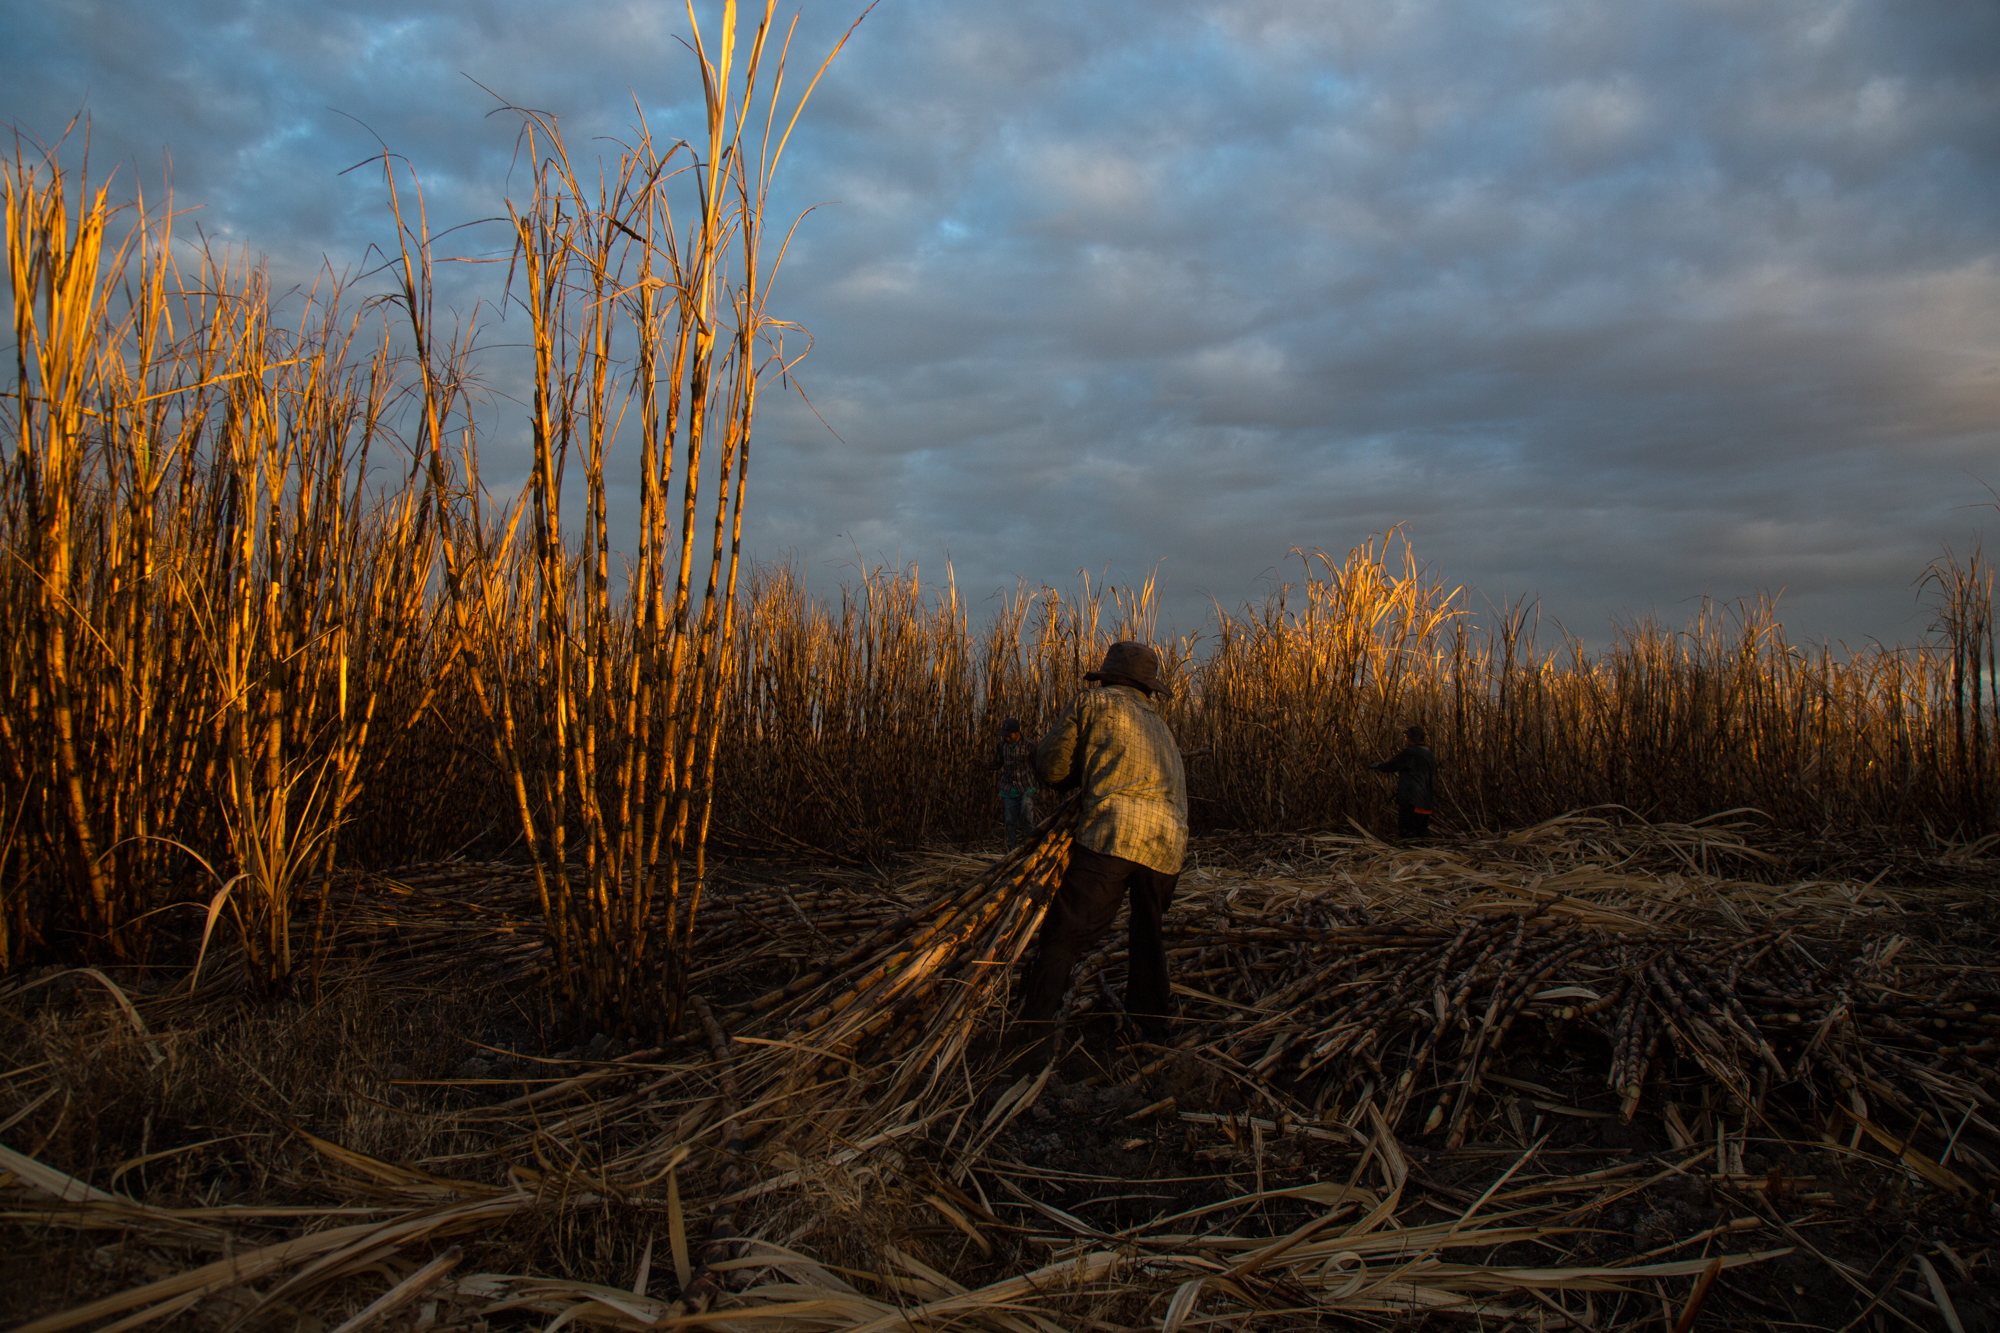 A man drags cut sugarcane in the early morning at the La Carrera plantation near the Bay of Juiquilisco, El Salvador.